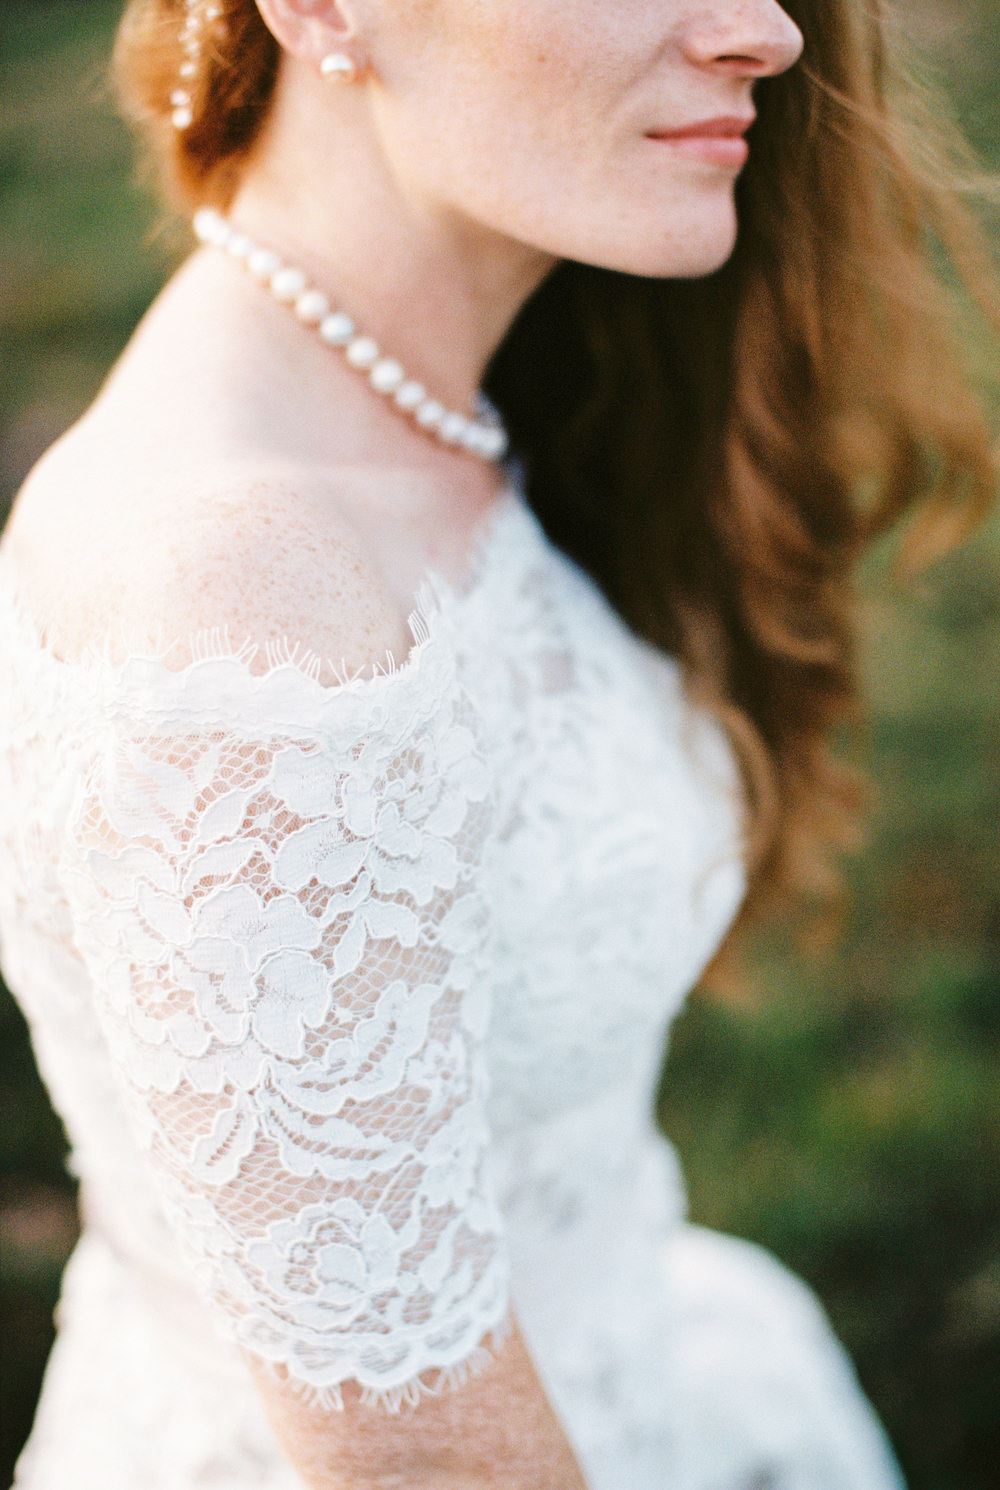 Dress Gown Bride Bridal White Rose Lace Fit Flare Off Shoulder Bardot Pearl Necklace Burley Manor Wedding Becky Bailey Photographer